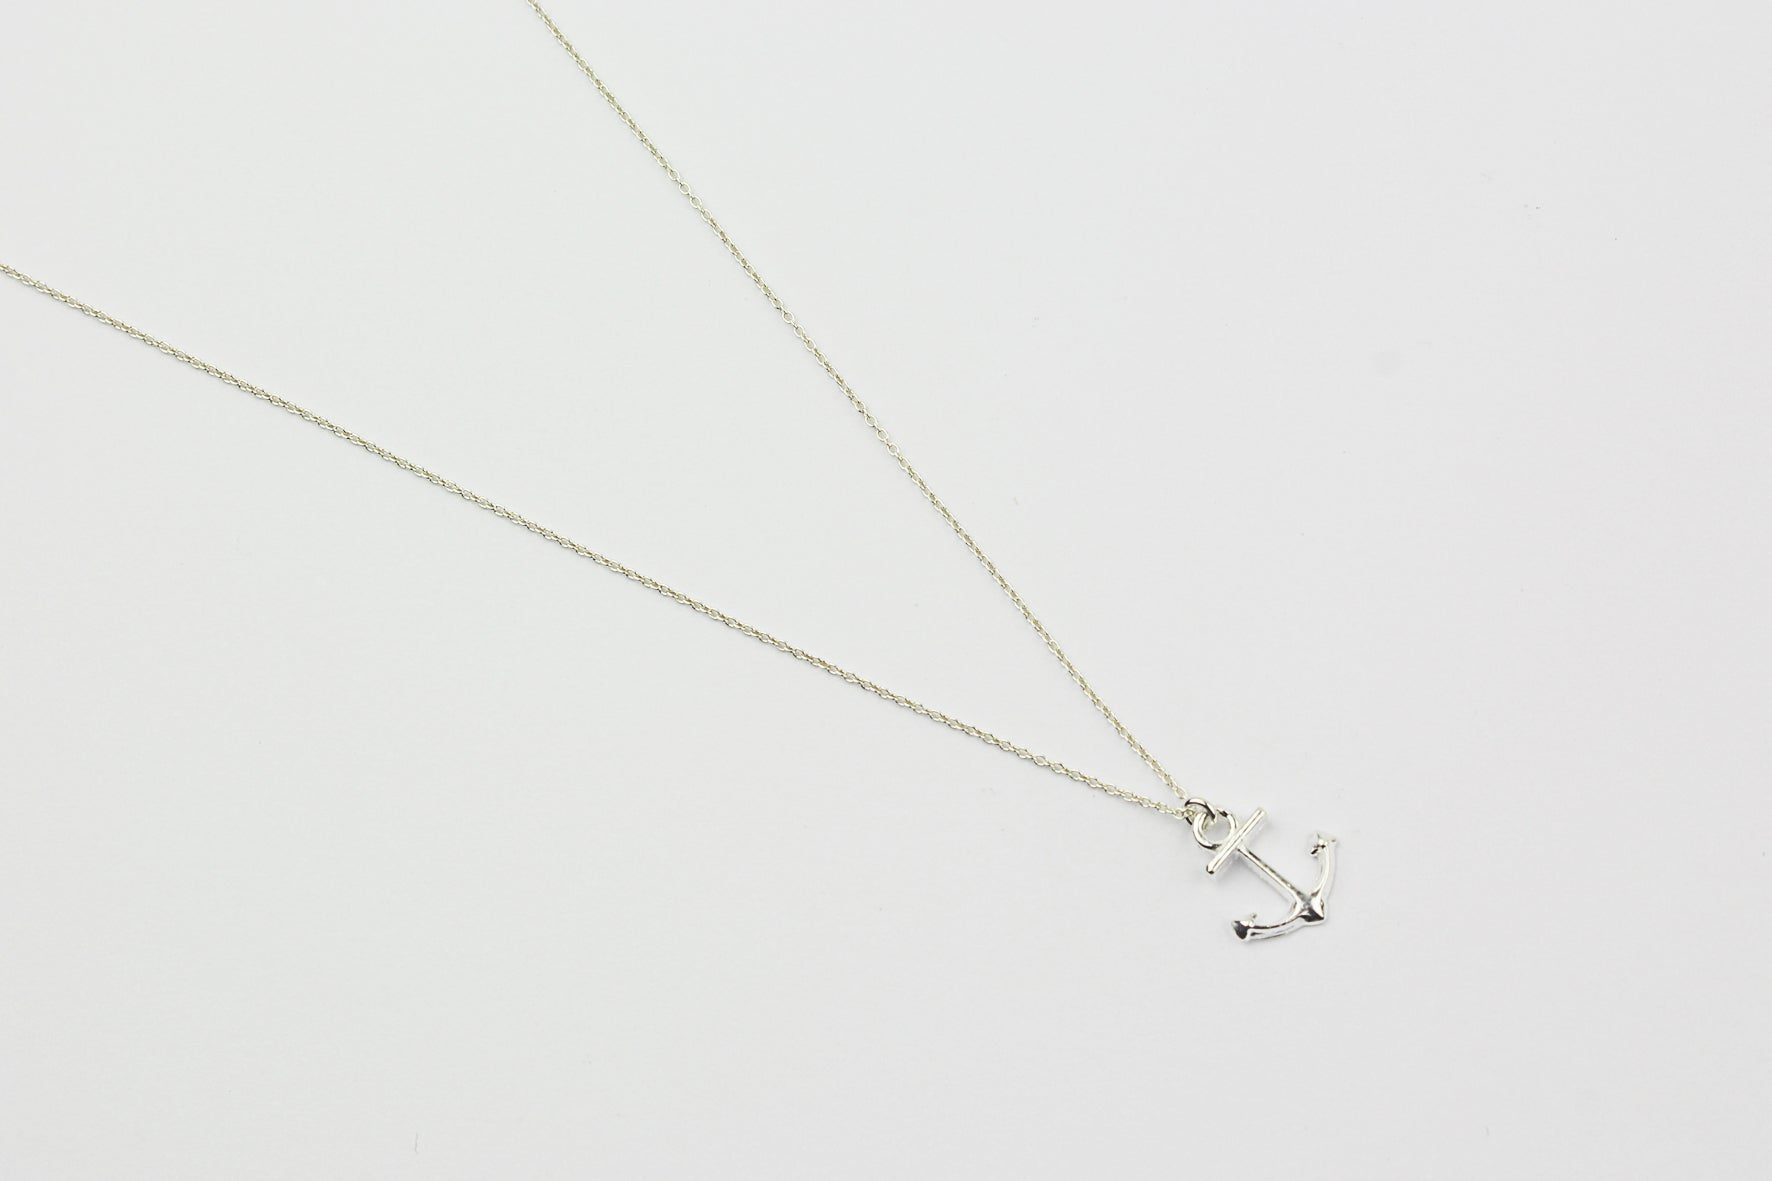 ....Kette ANCHOR 925 Silber..Necklace ANCHOR 925 Sterling Silver....